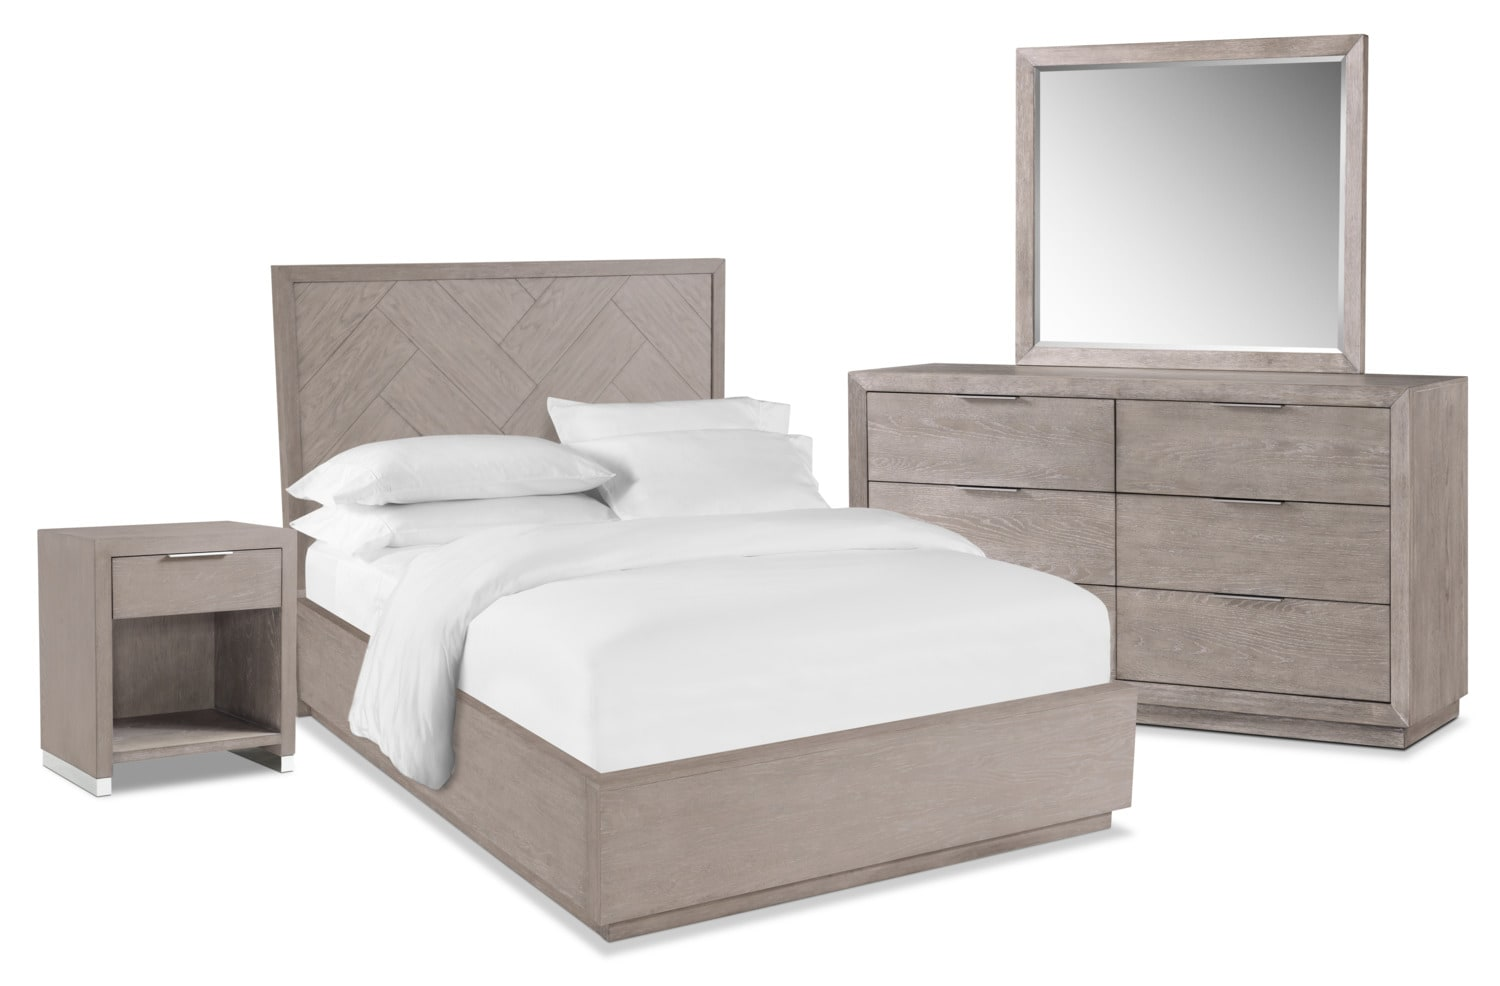 Zen 6-Piece Bedroom Set with Nightstand, Dresser and Mirror | Value ...